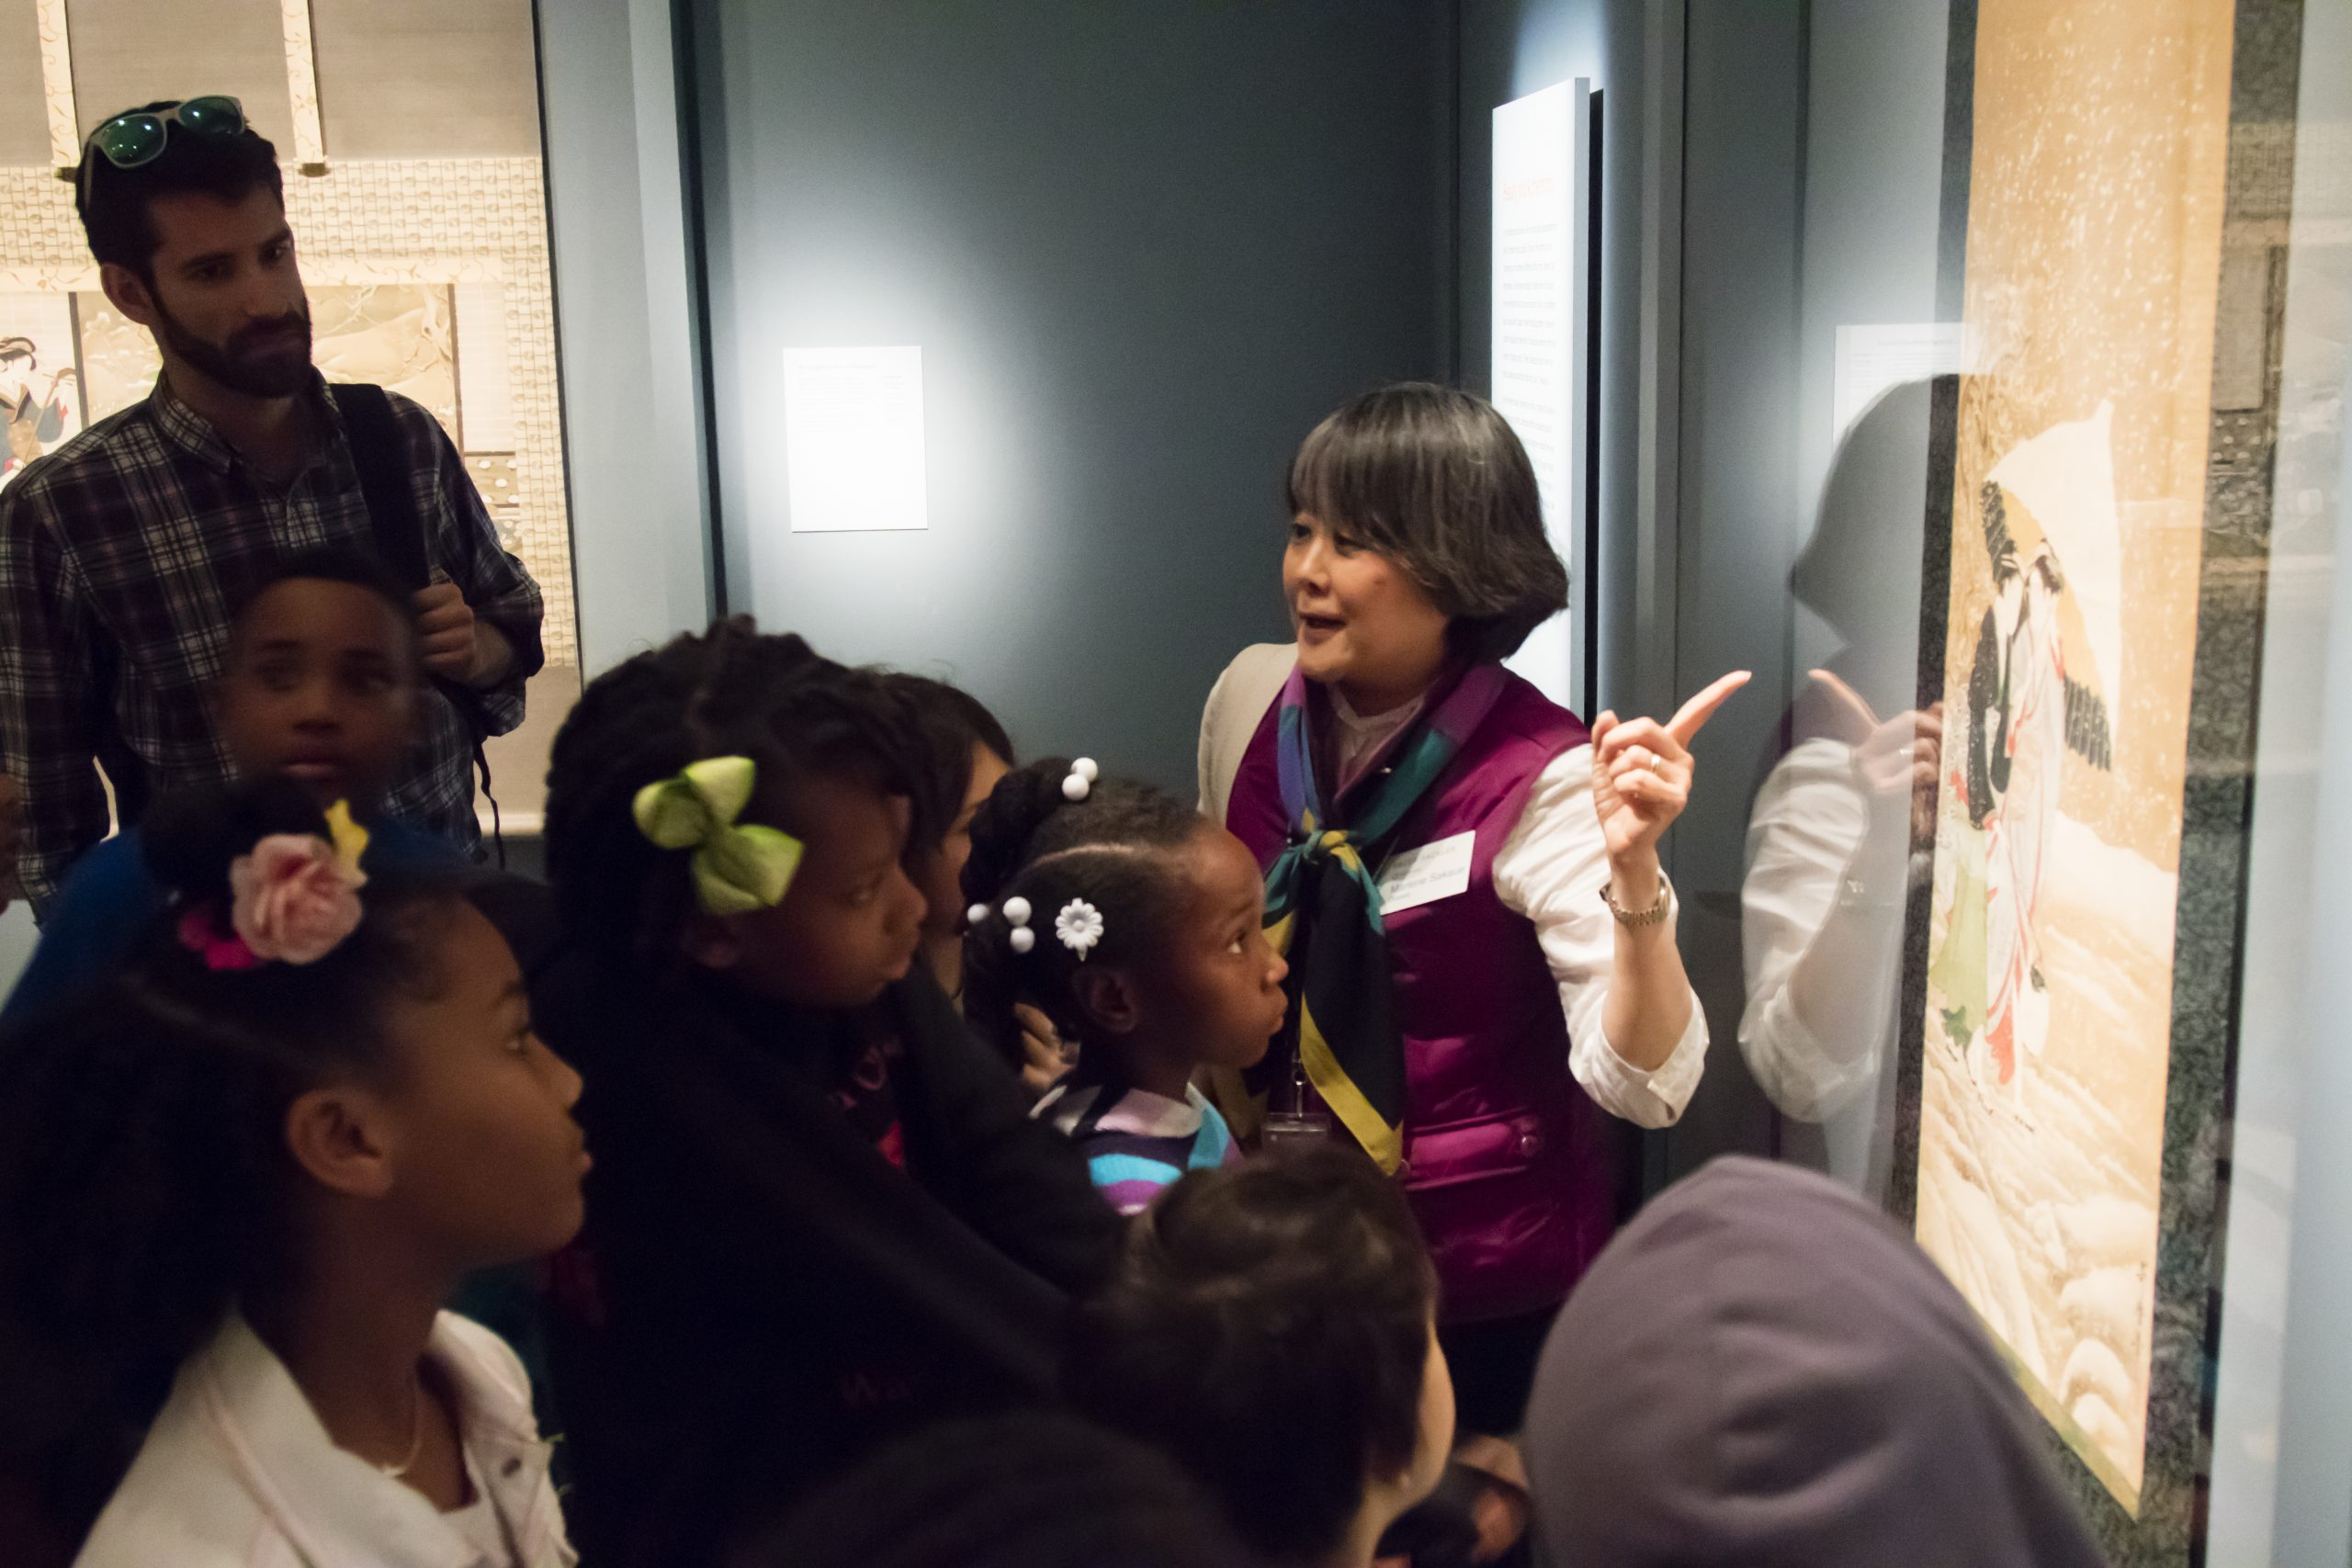 a docent points to artwork in a museum filled with children